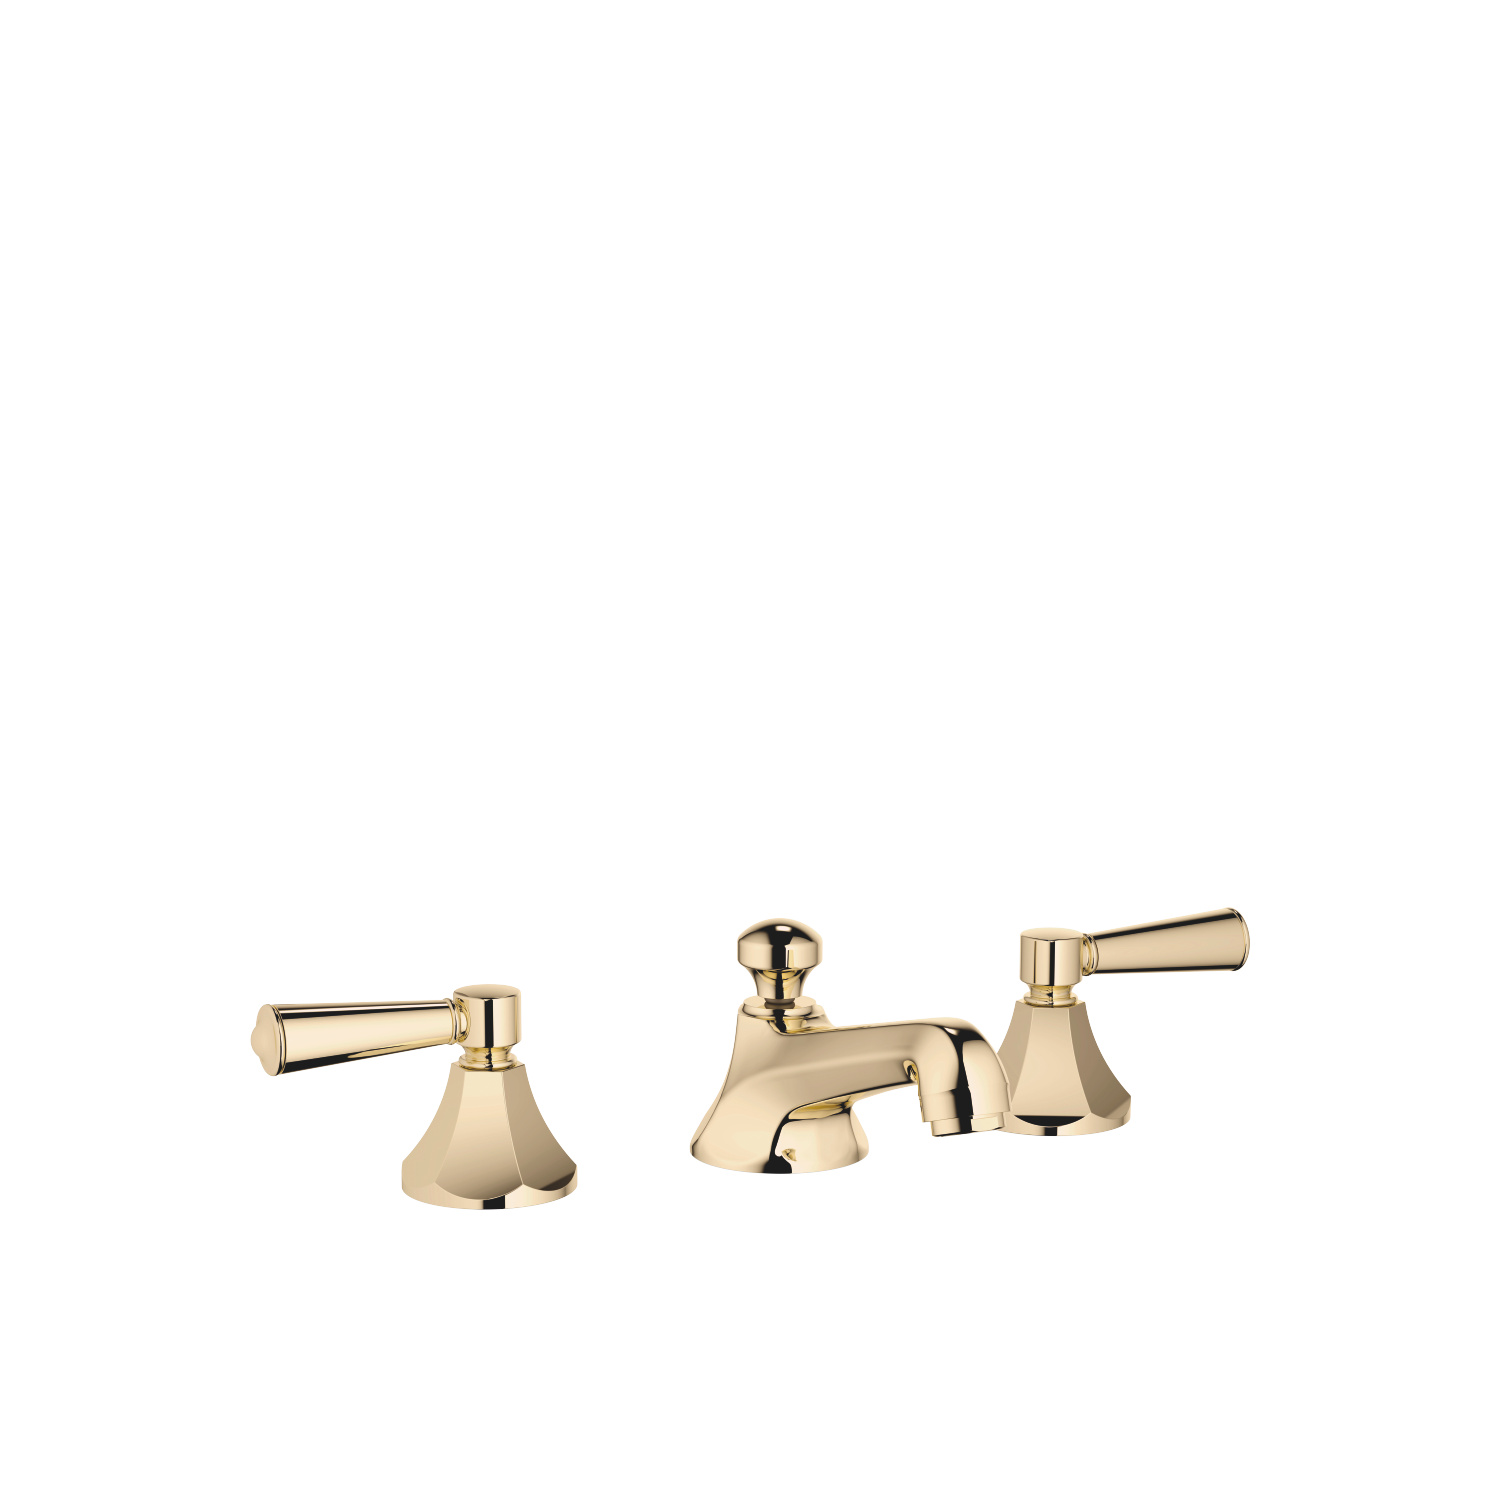 Three-hole basin mixer with pop-up waste - Durabrass